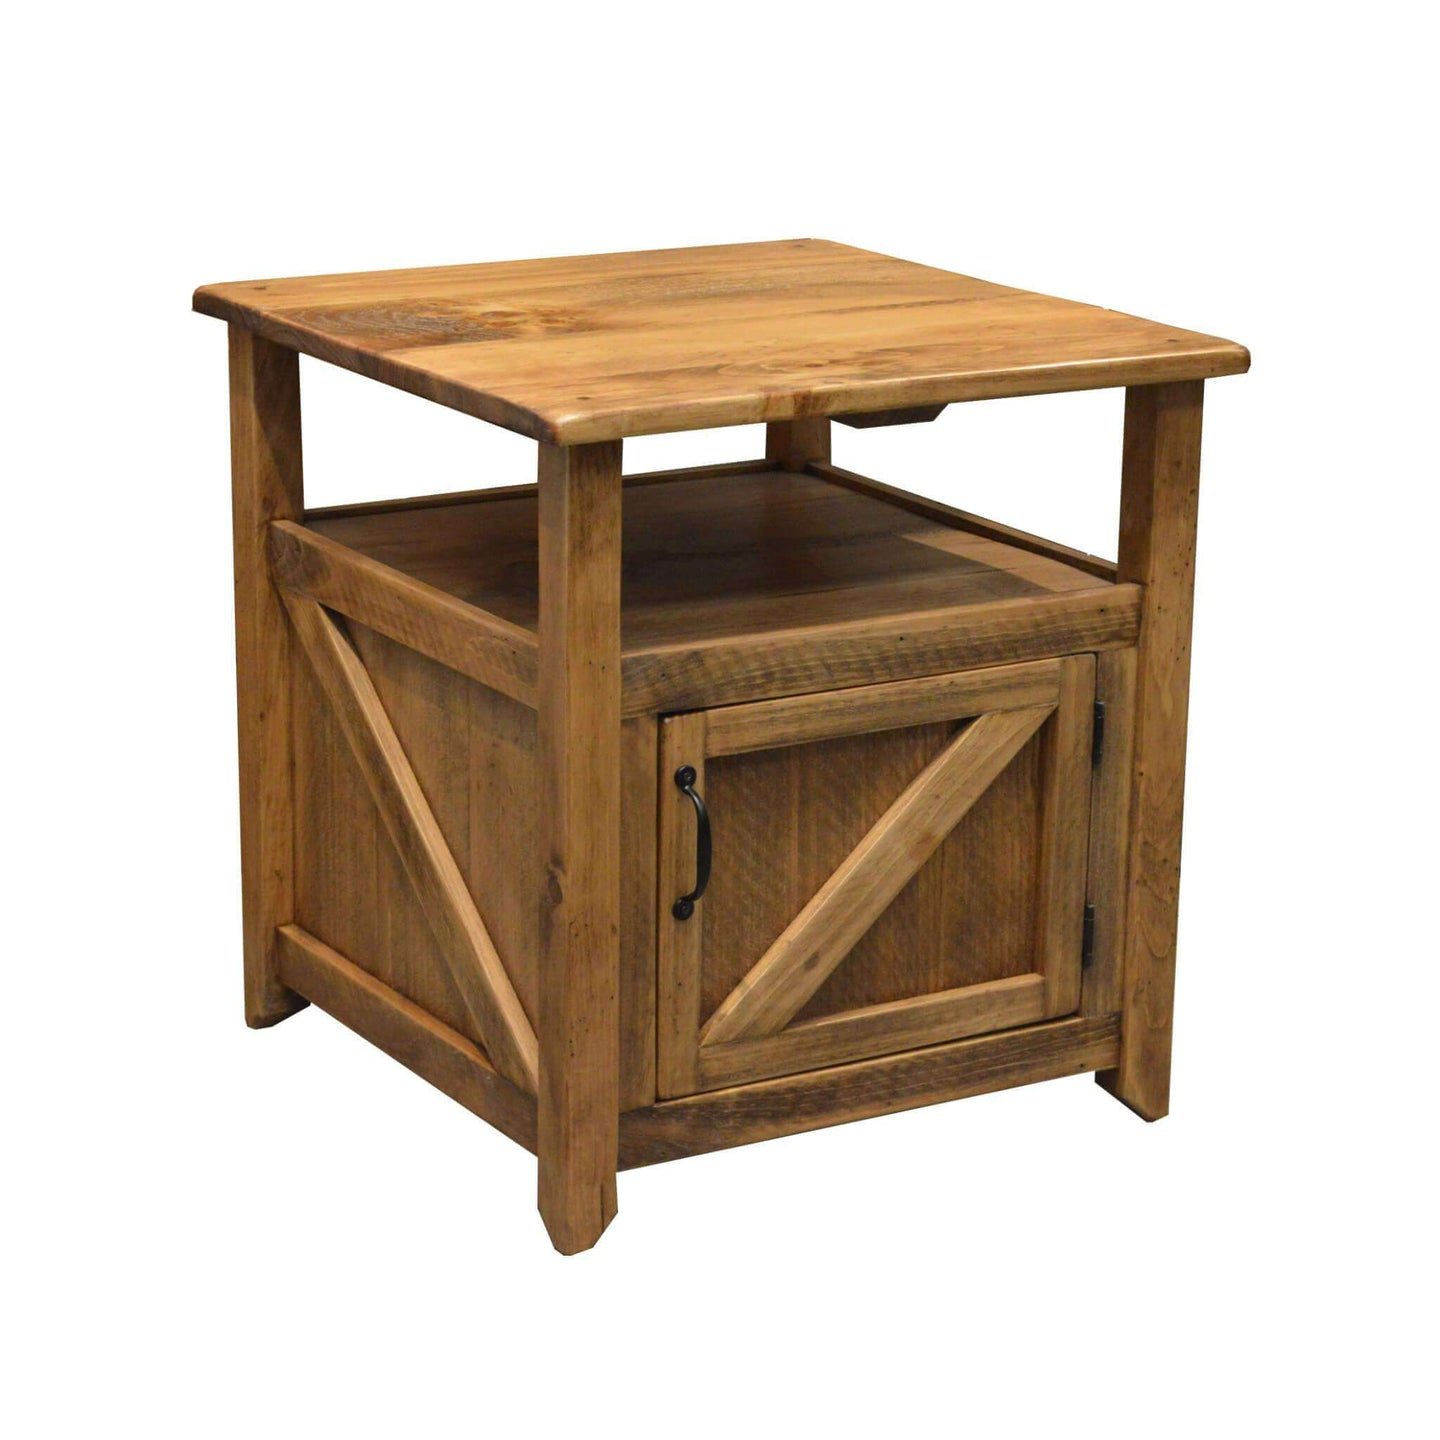 2-Day Designs Braselton End Table